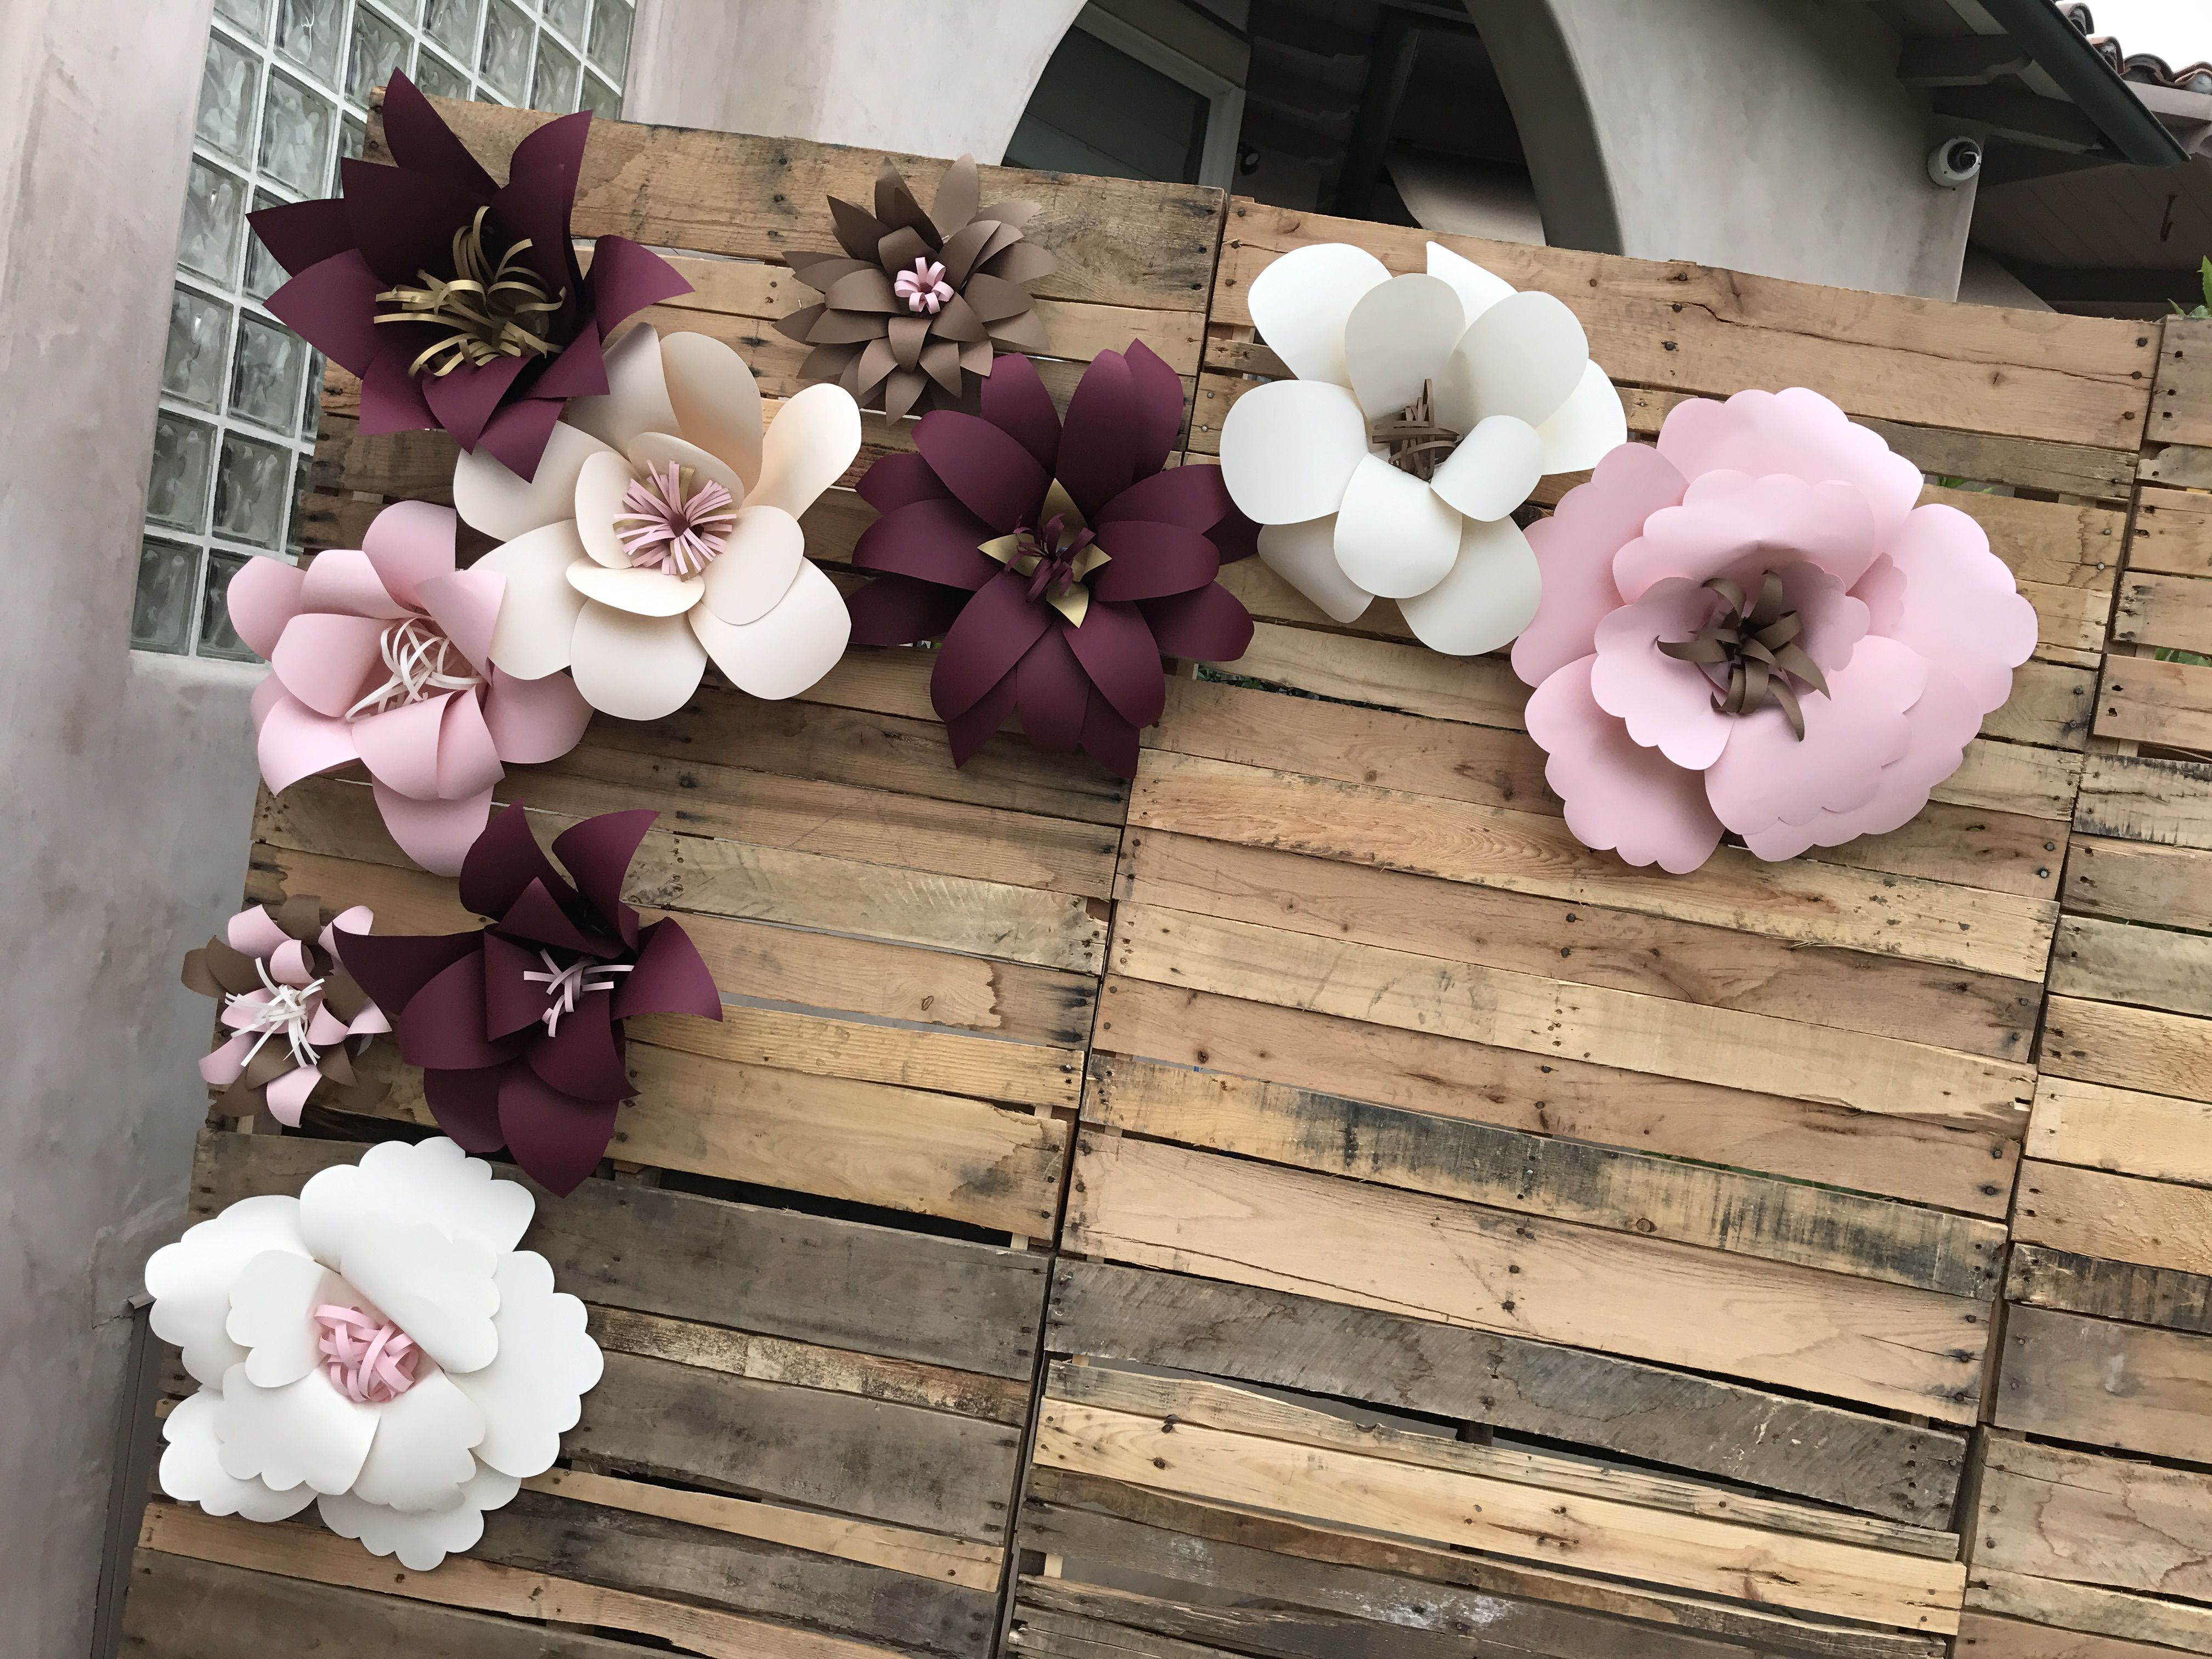 Paper Flowers On Pallet Wall Perfect For Bridal Shower Decor